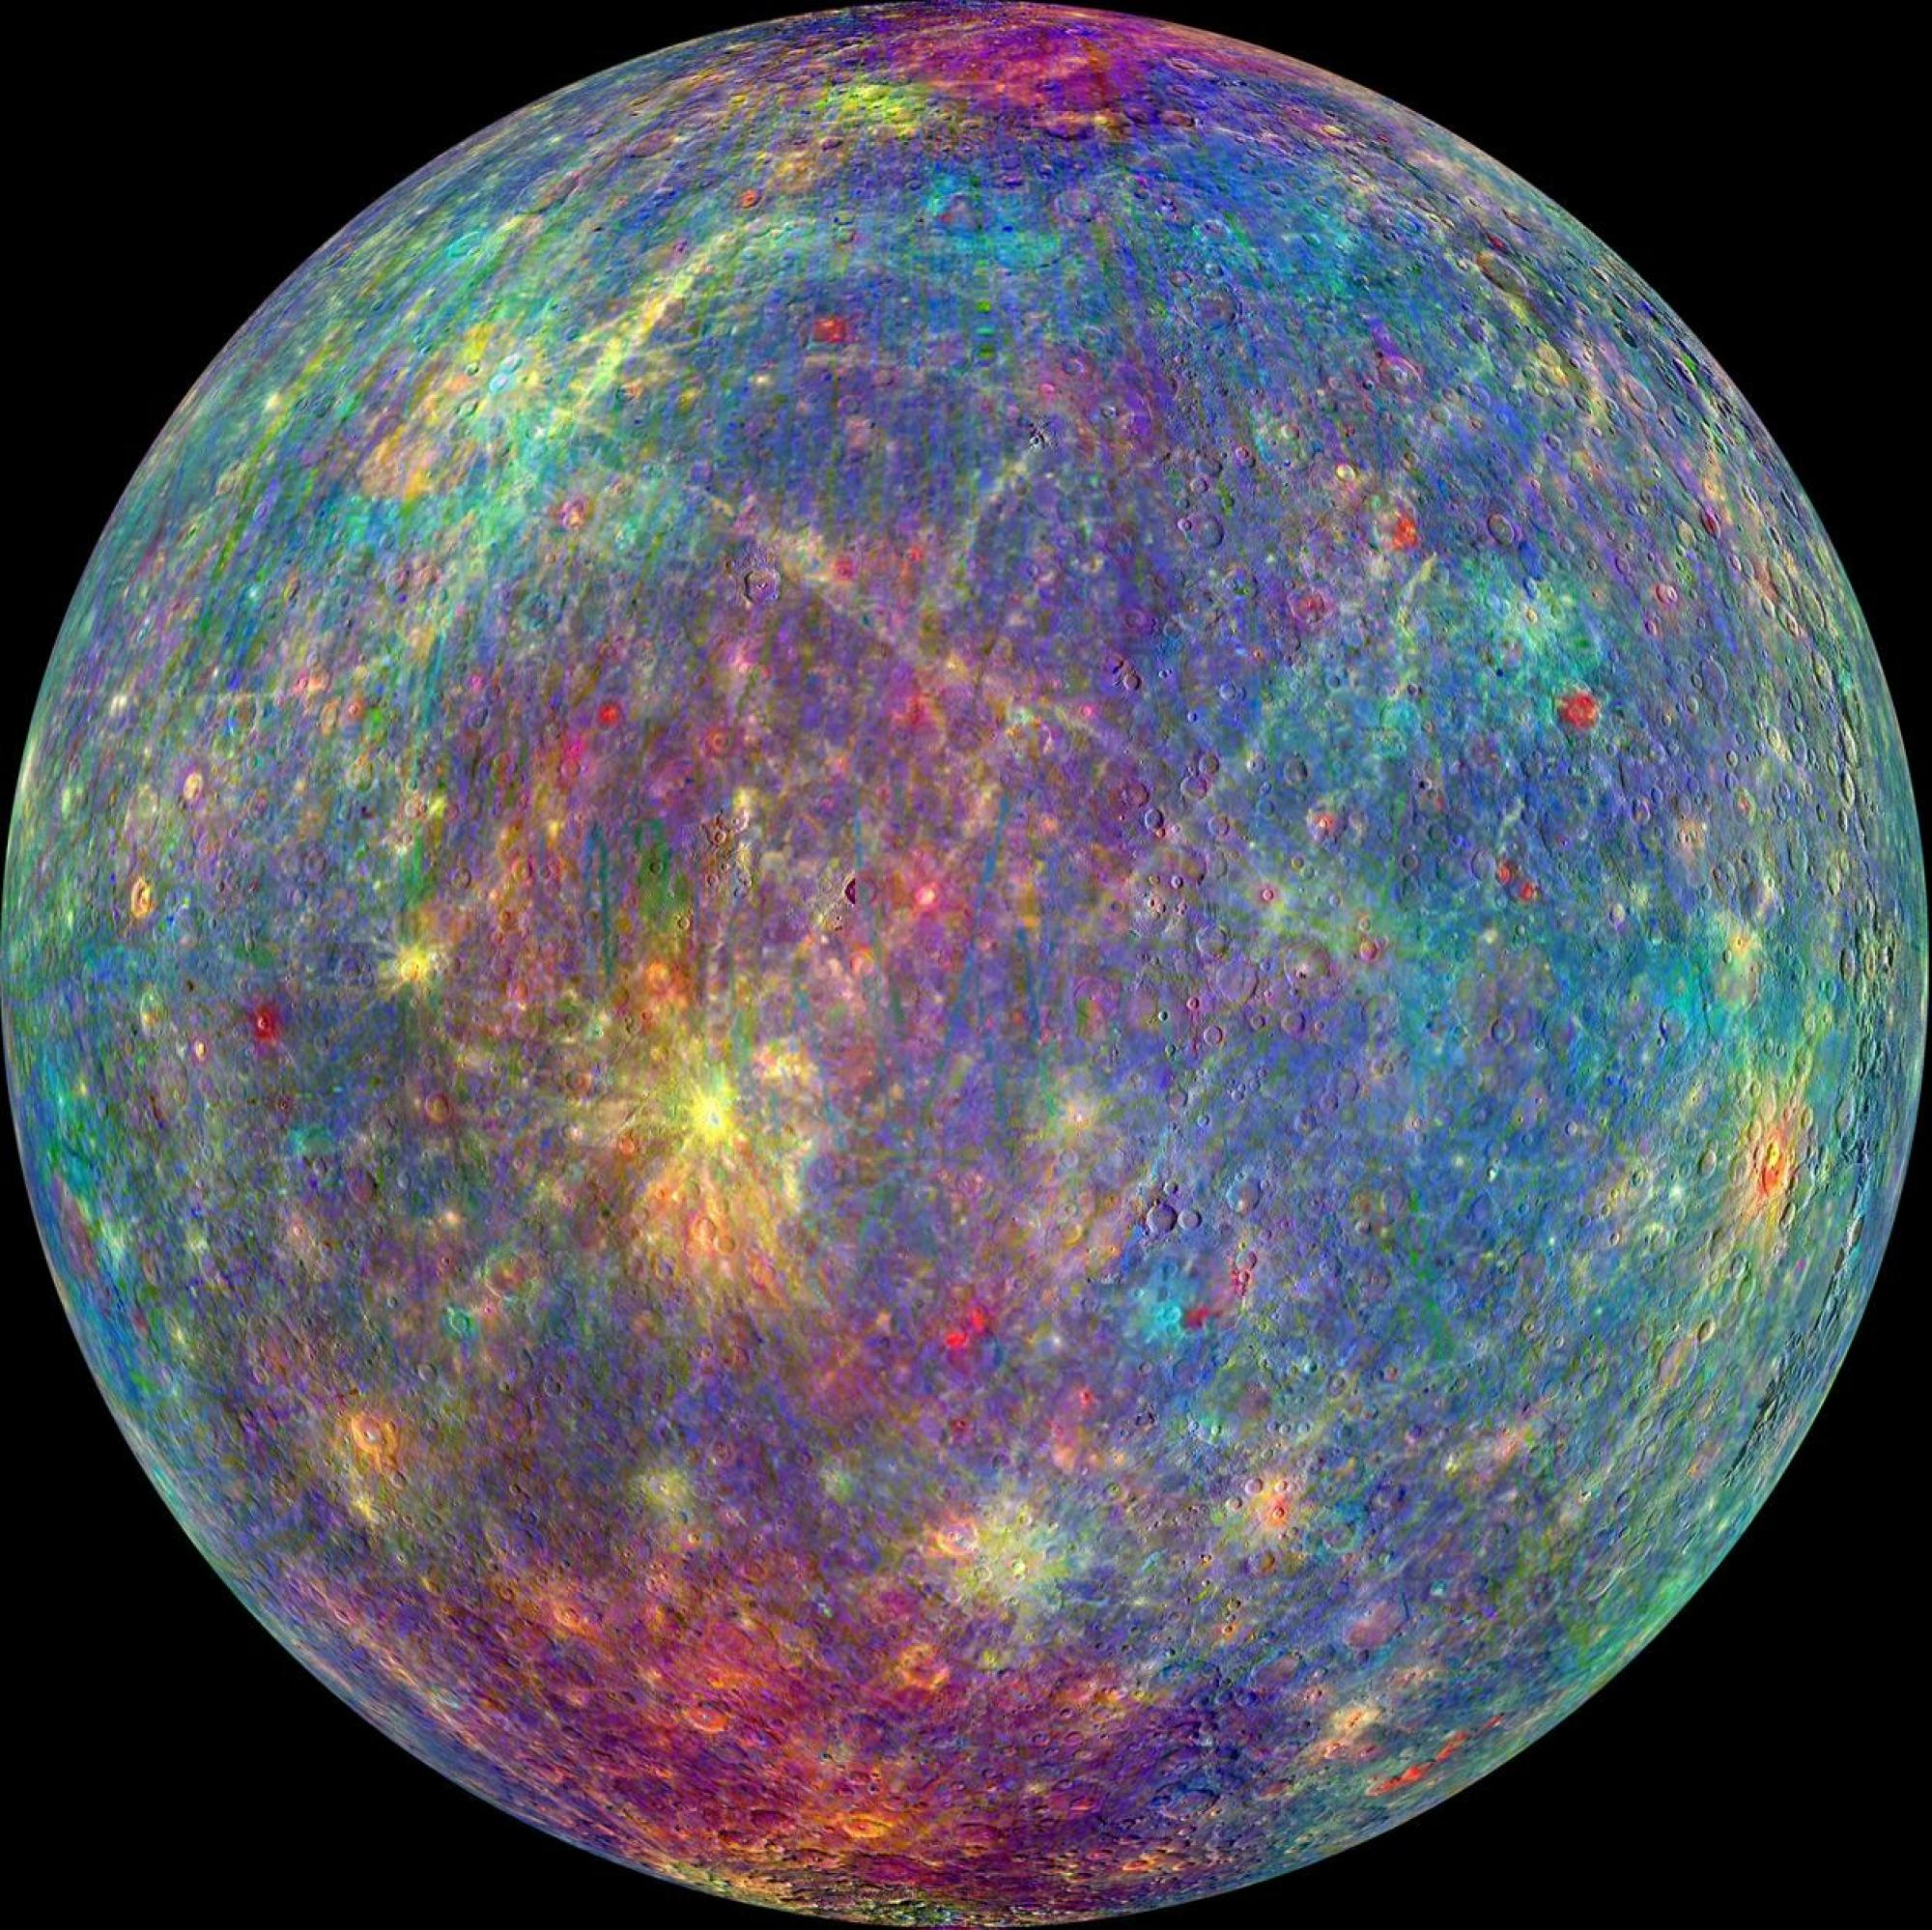 Though Mercury may look drab to the human eye, different minerals appear in a rainbow of colors in this image from NASA's MESSENGER spacecraft.